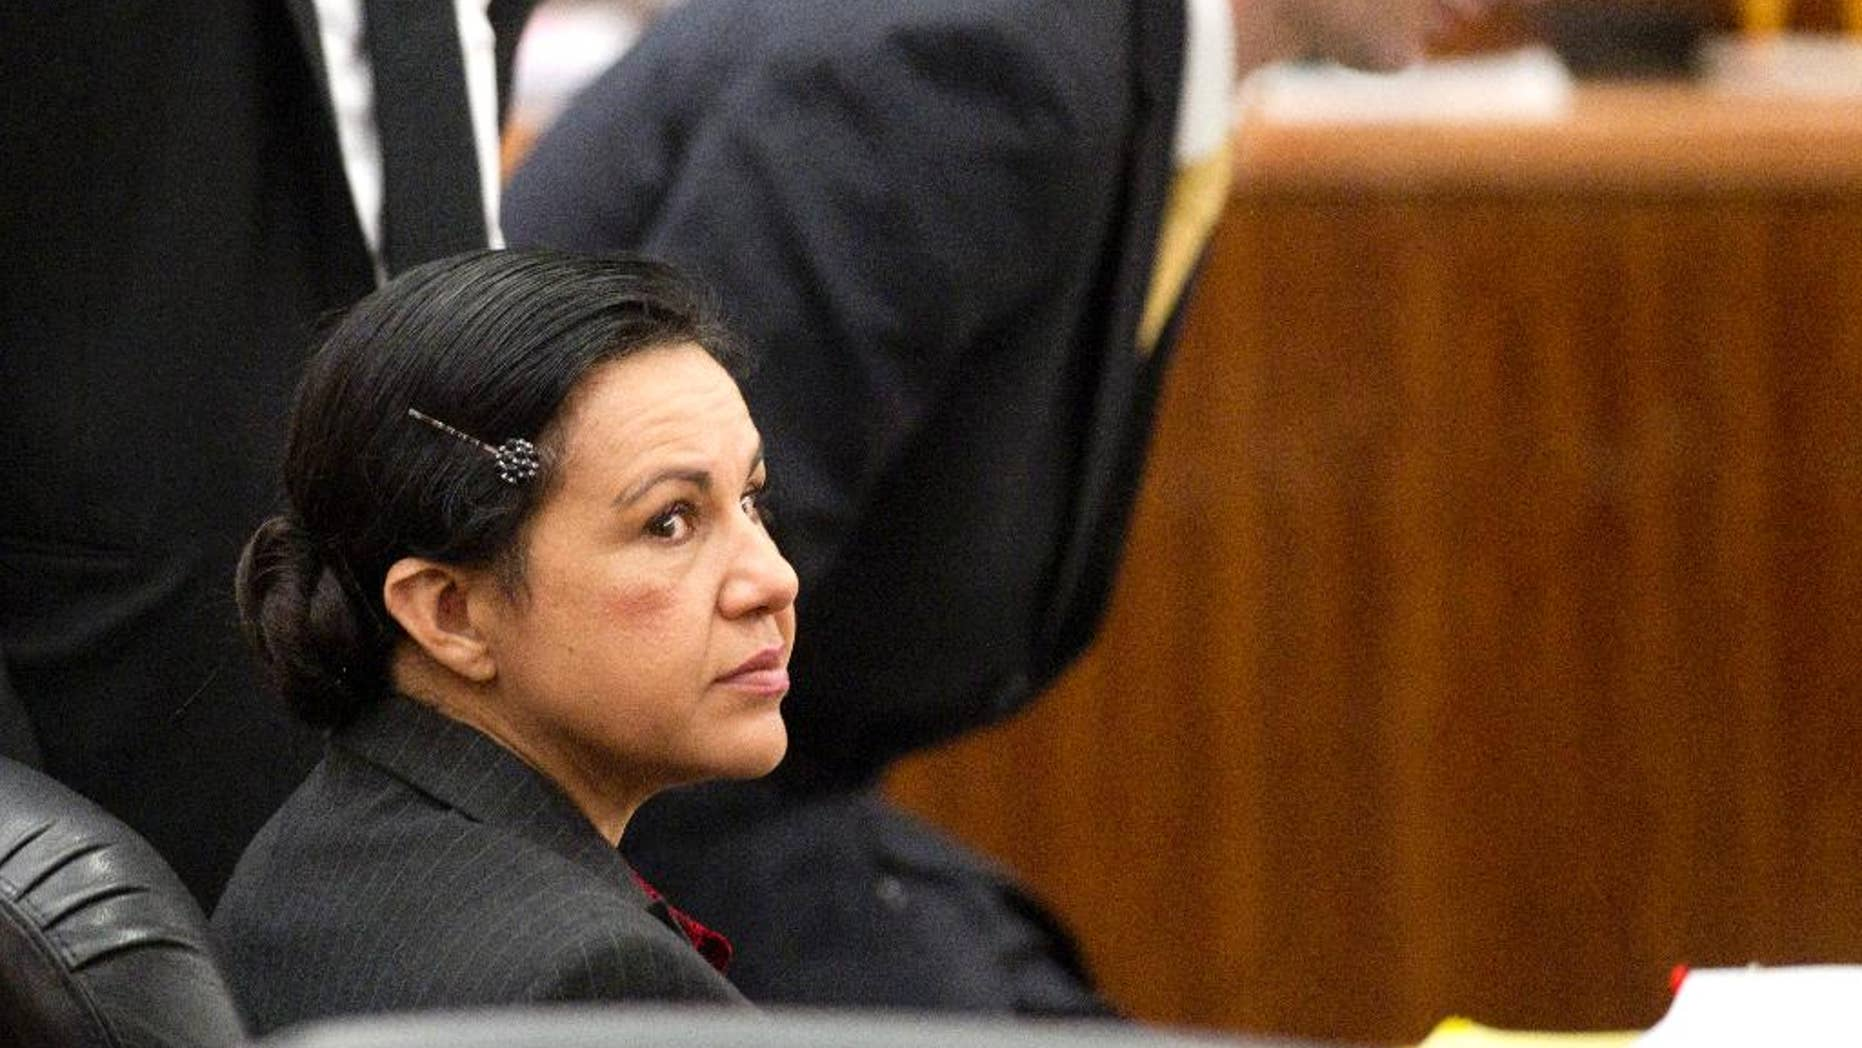 Ana Lilia Trujillo, left, sits in the courtroom before opening arguments in her trial, Monday, March 31, 2014, in Houston. Trujillo, 45, is charged with murder, accused of killing her 59-year-old boyfriend, Alf Stefan Andersson, at his Museum District high-rise condominium in June 2013. (AP Photo/Houston Chronicle, Brett Coomer)